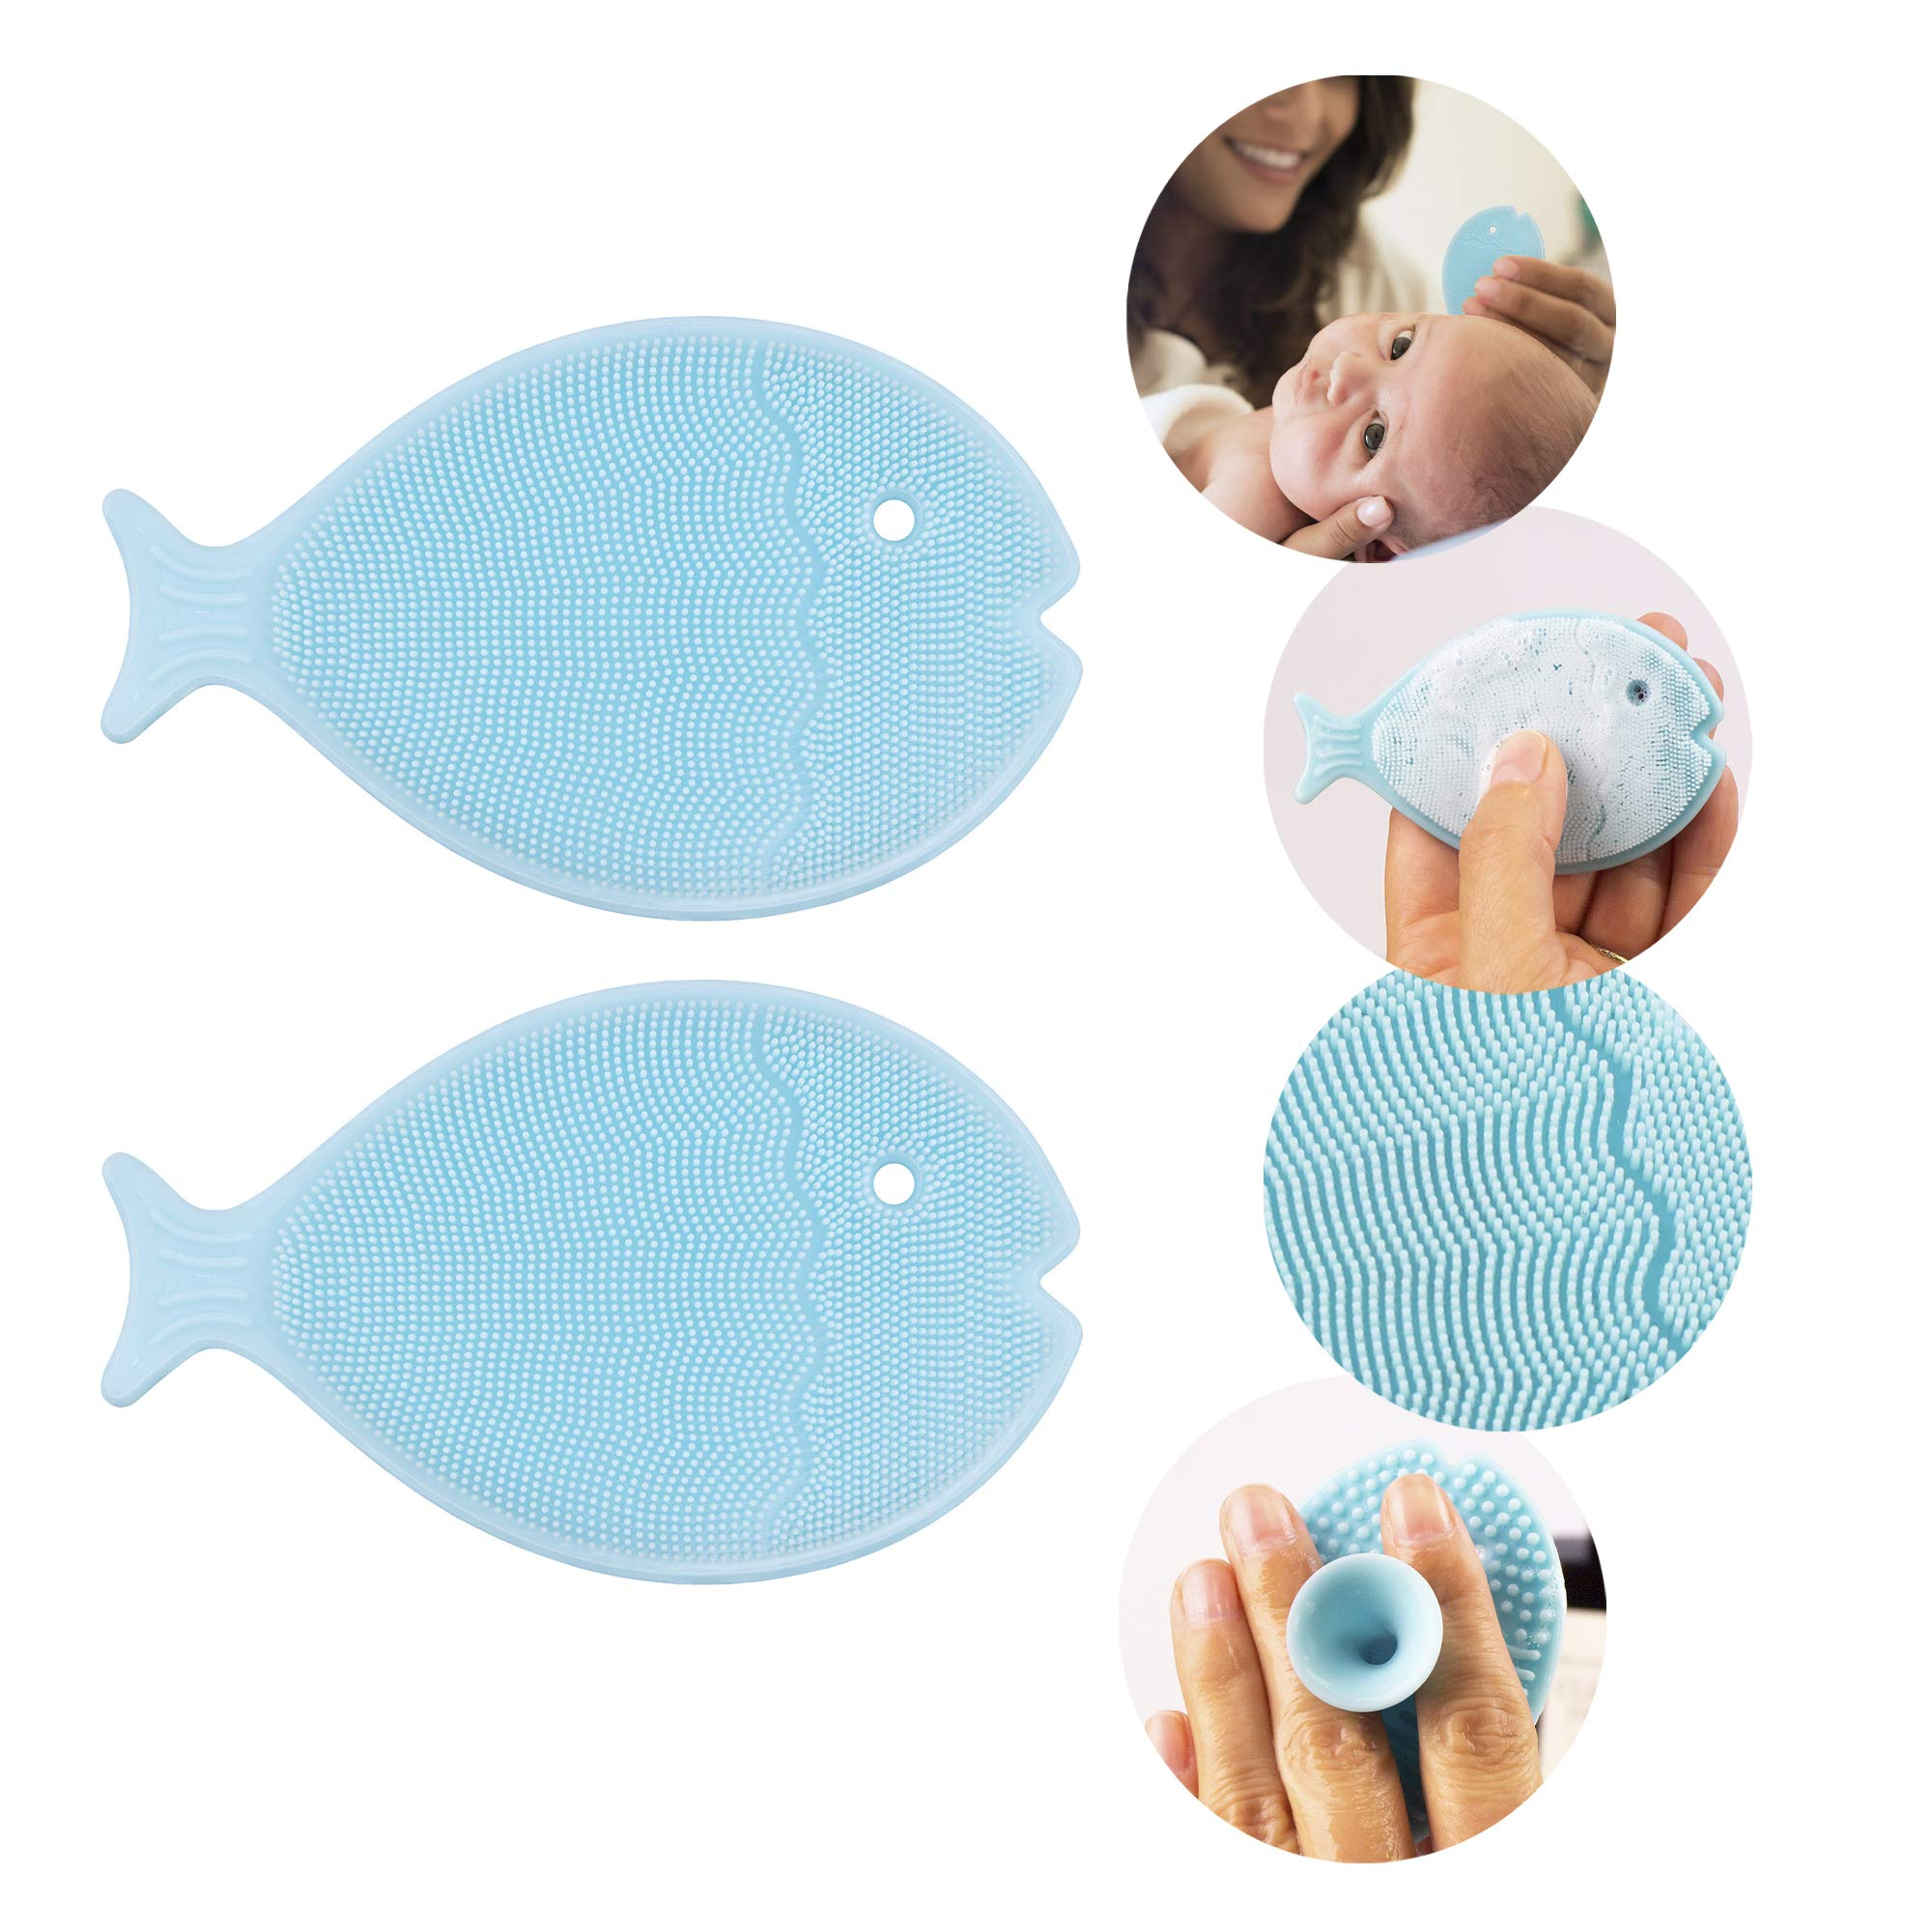 Innobaby Bathin Smart Baby Bath Silicone Cradle Cap Brush, Essential for Dry Skin and Eczema (2 Pack)